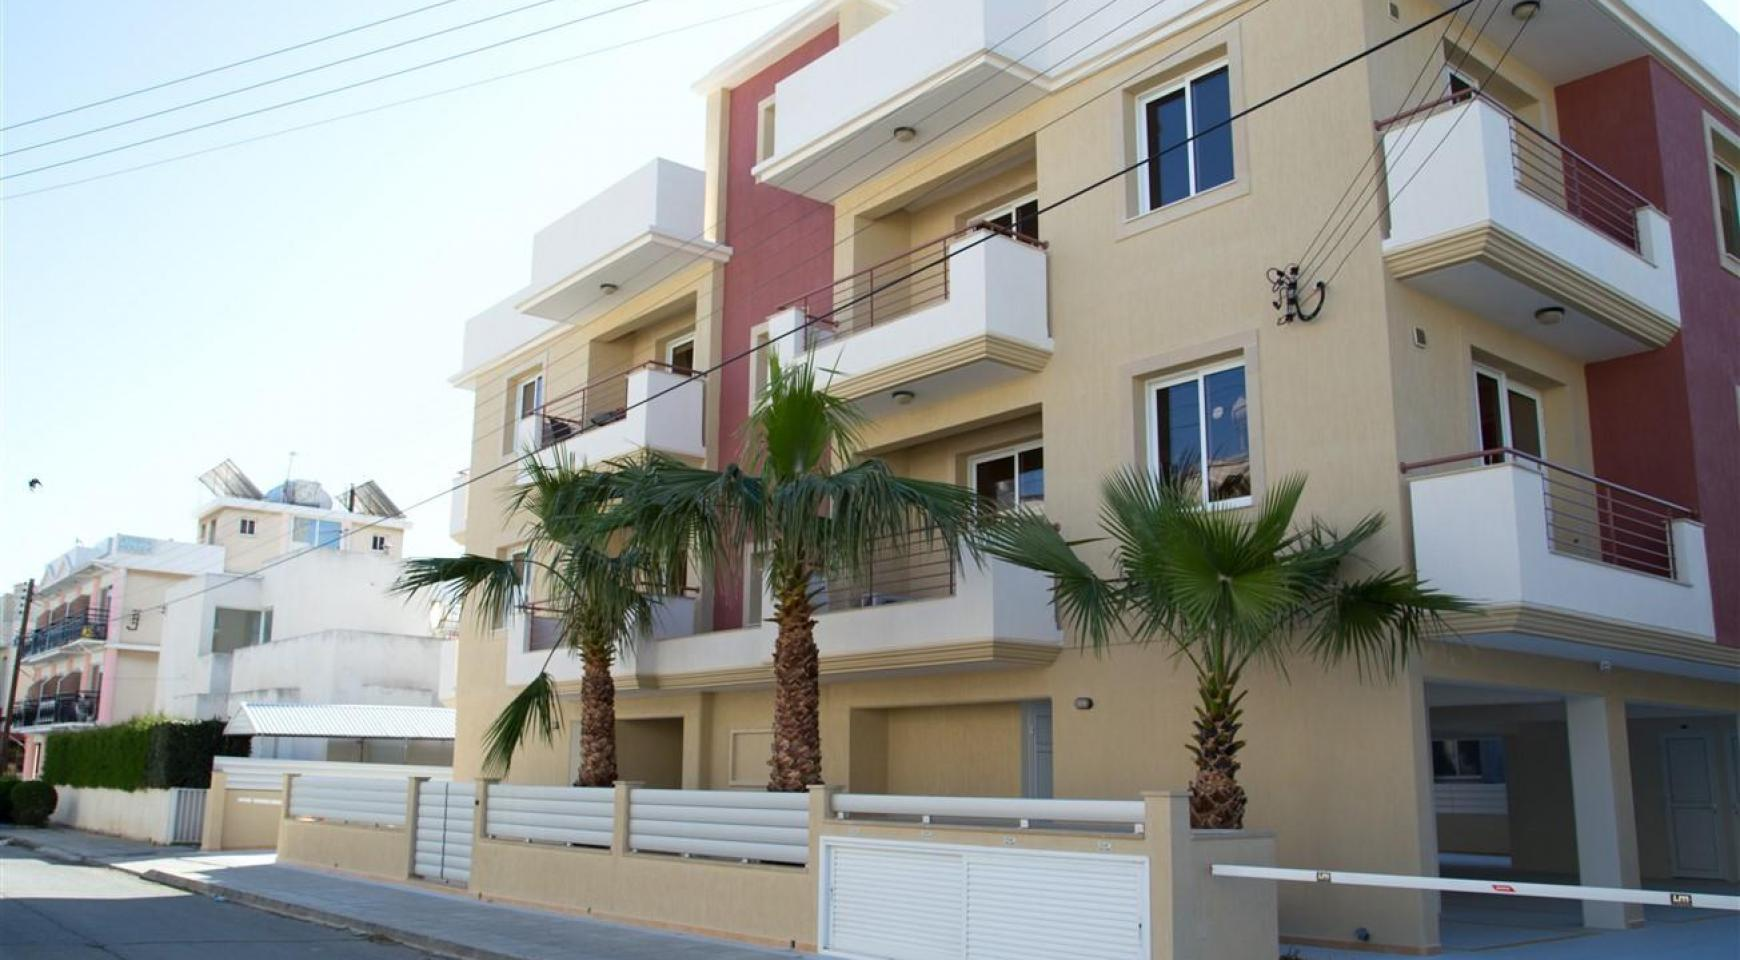 Luxury One Bedroom Apartment Frida 103 in the Tourist Area - 10